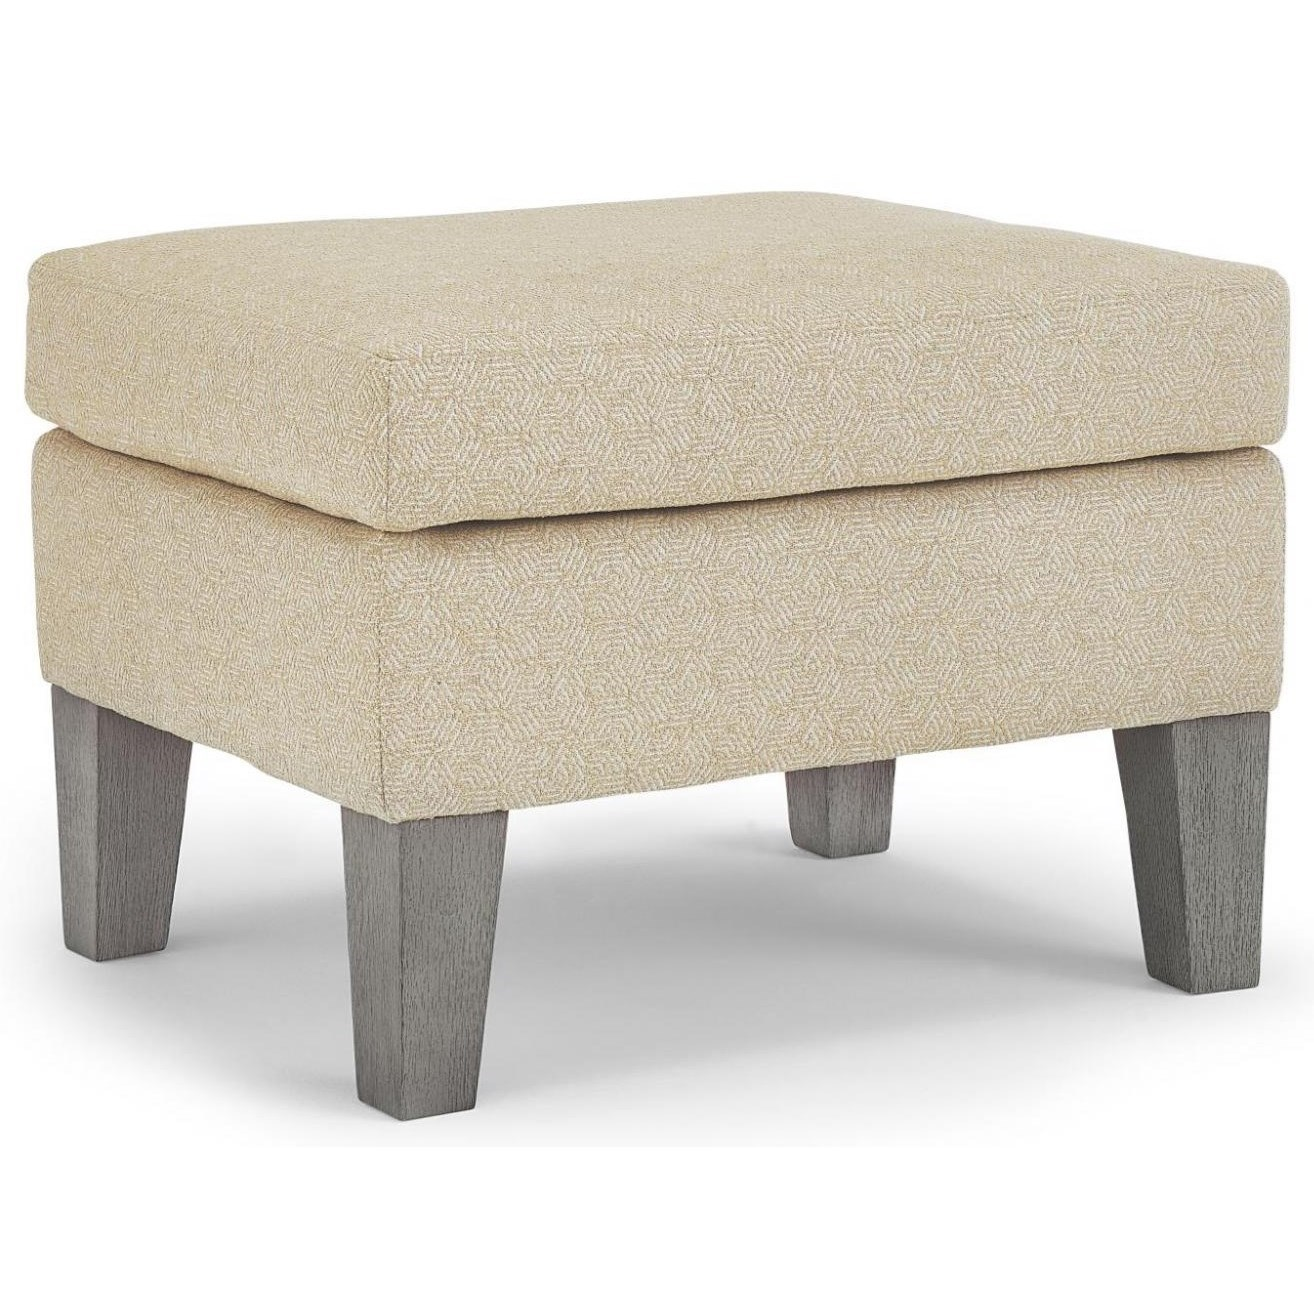 0008 Ottoman by Best Home Furnishings at Coconis Furniture & Mattress 1st